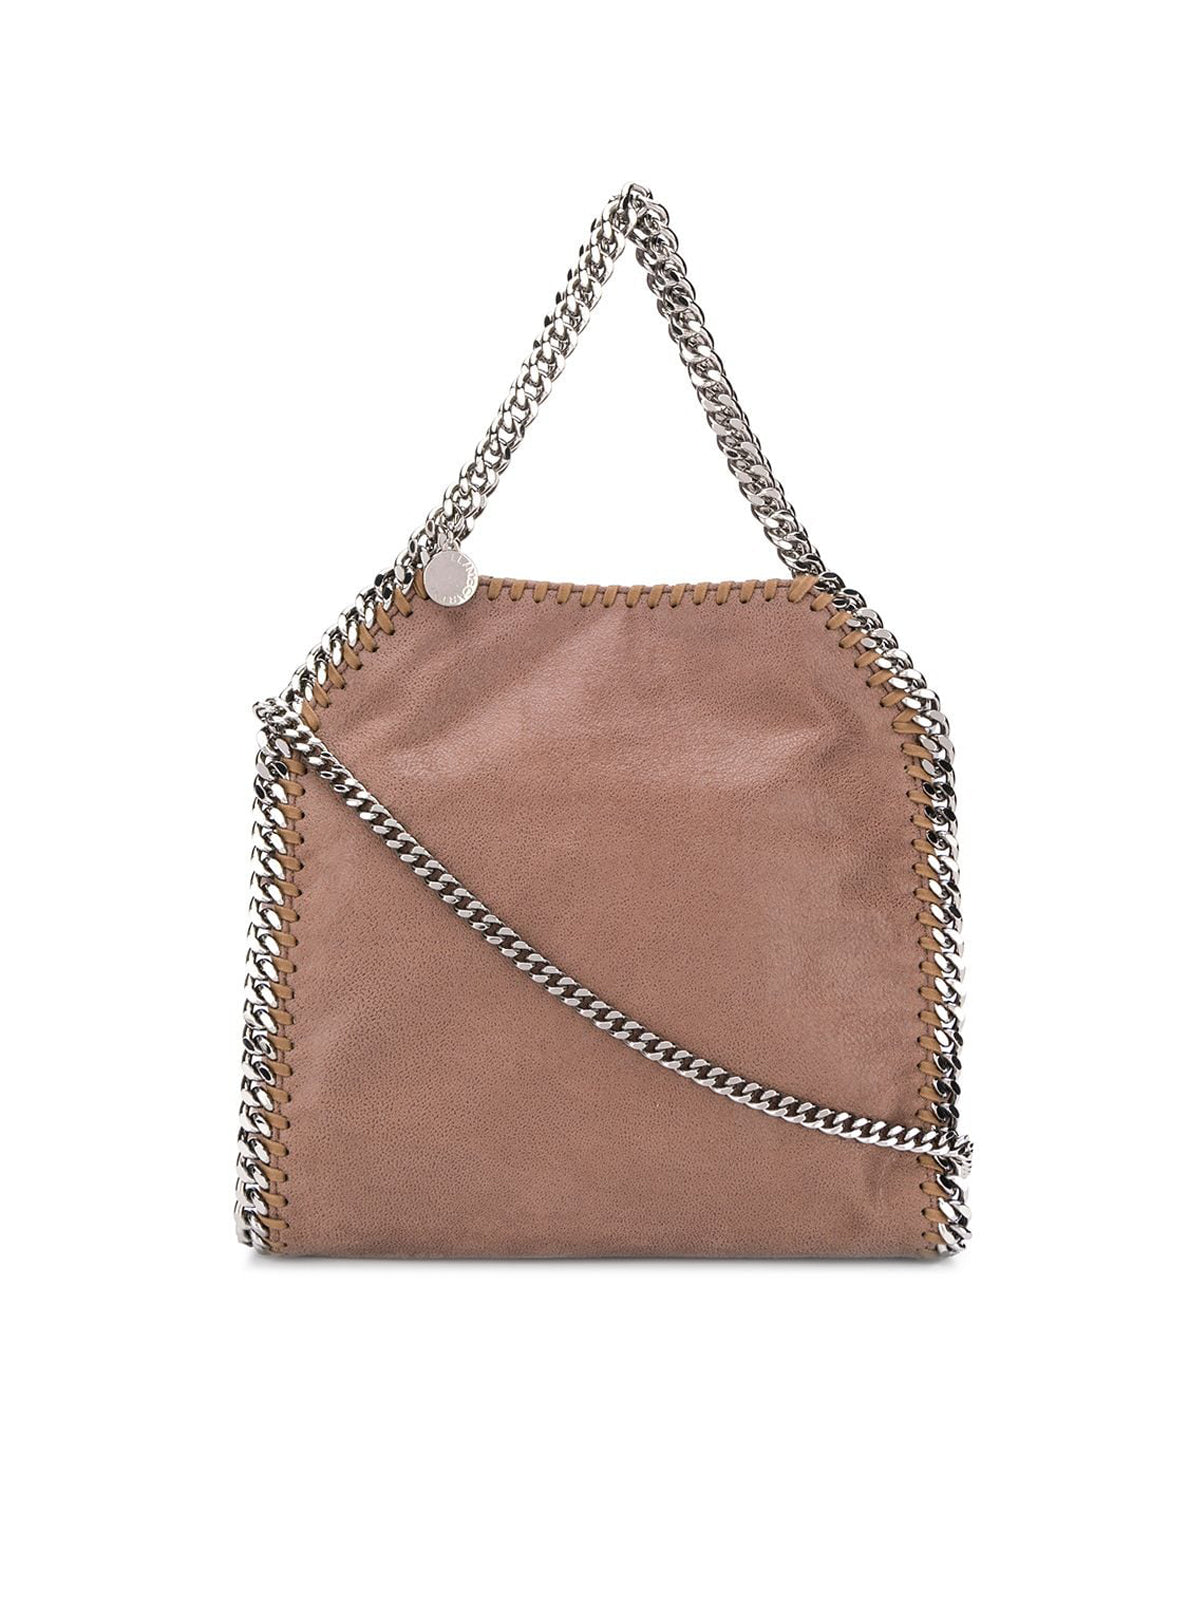 MINI TOTE FALABELLA 3 CHAIN SHAGGY DEER